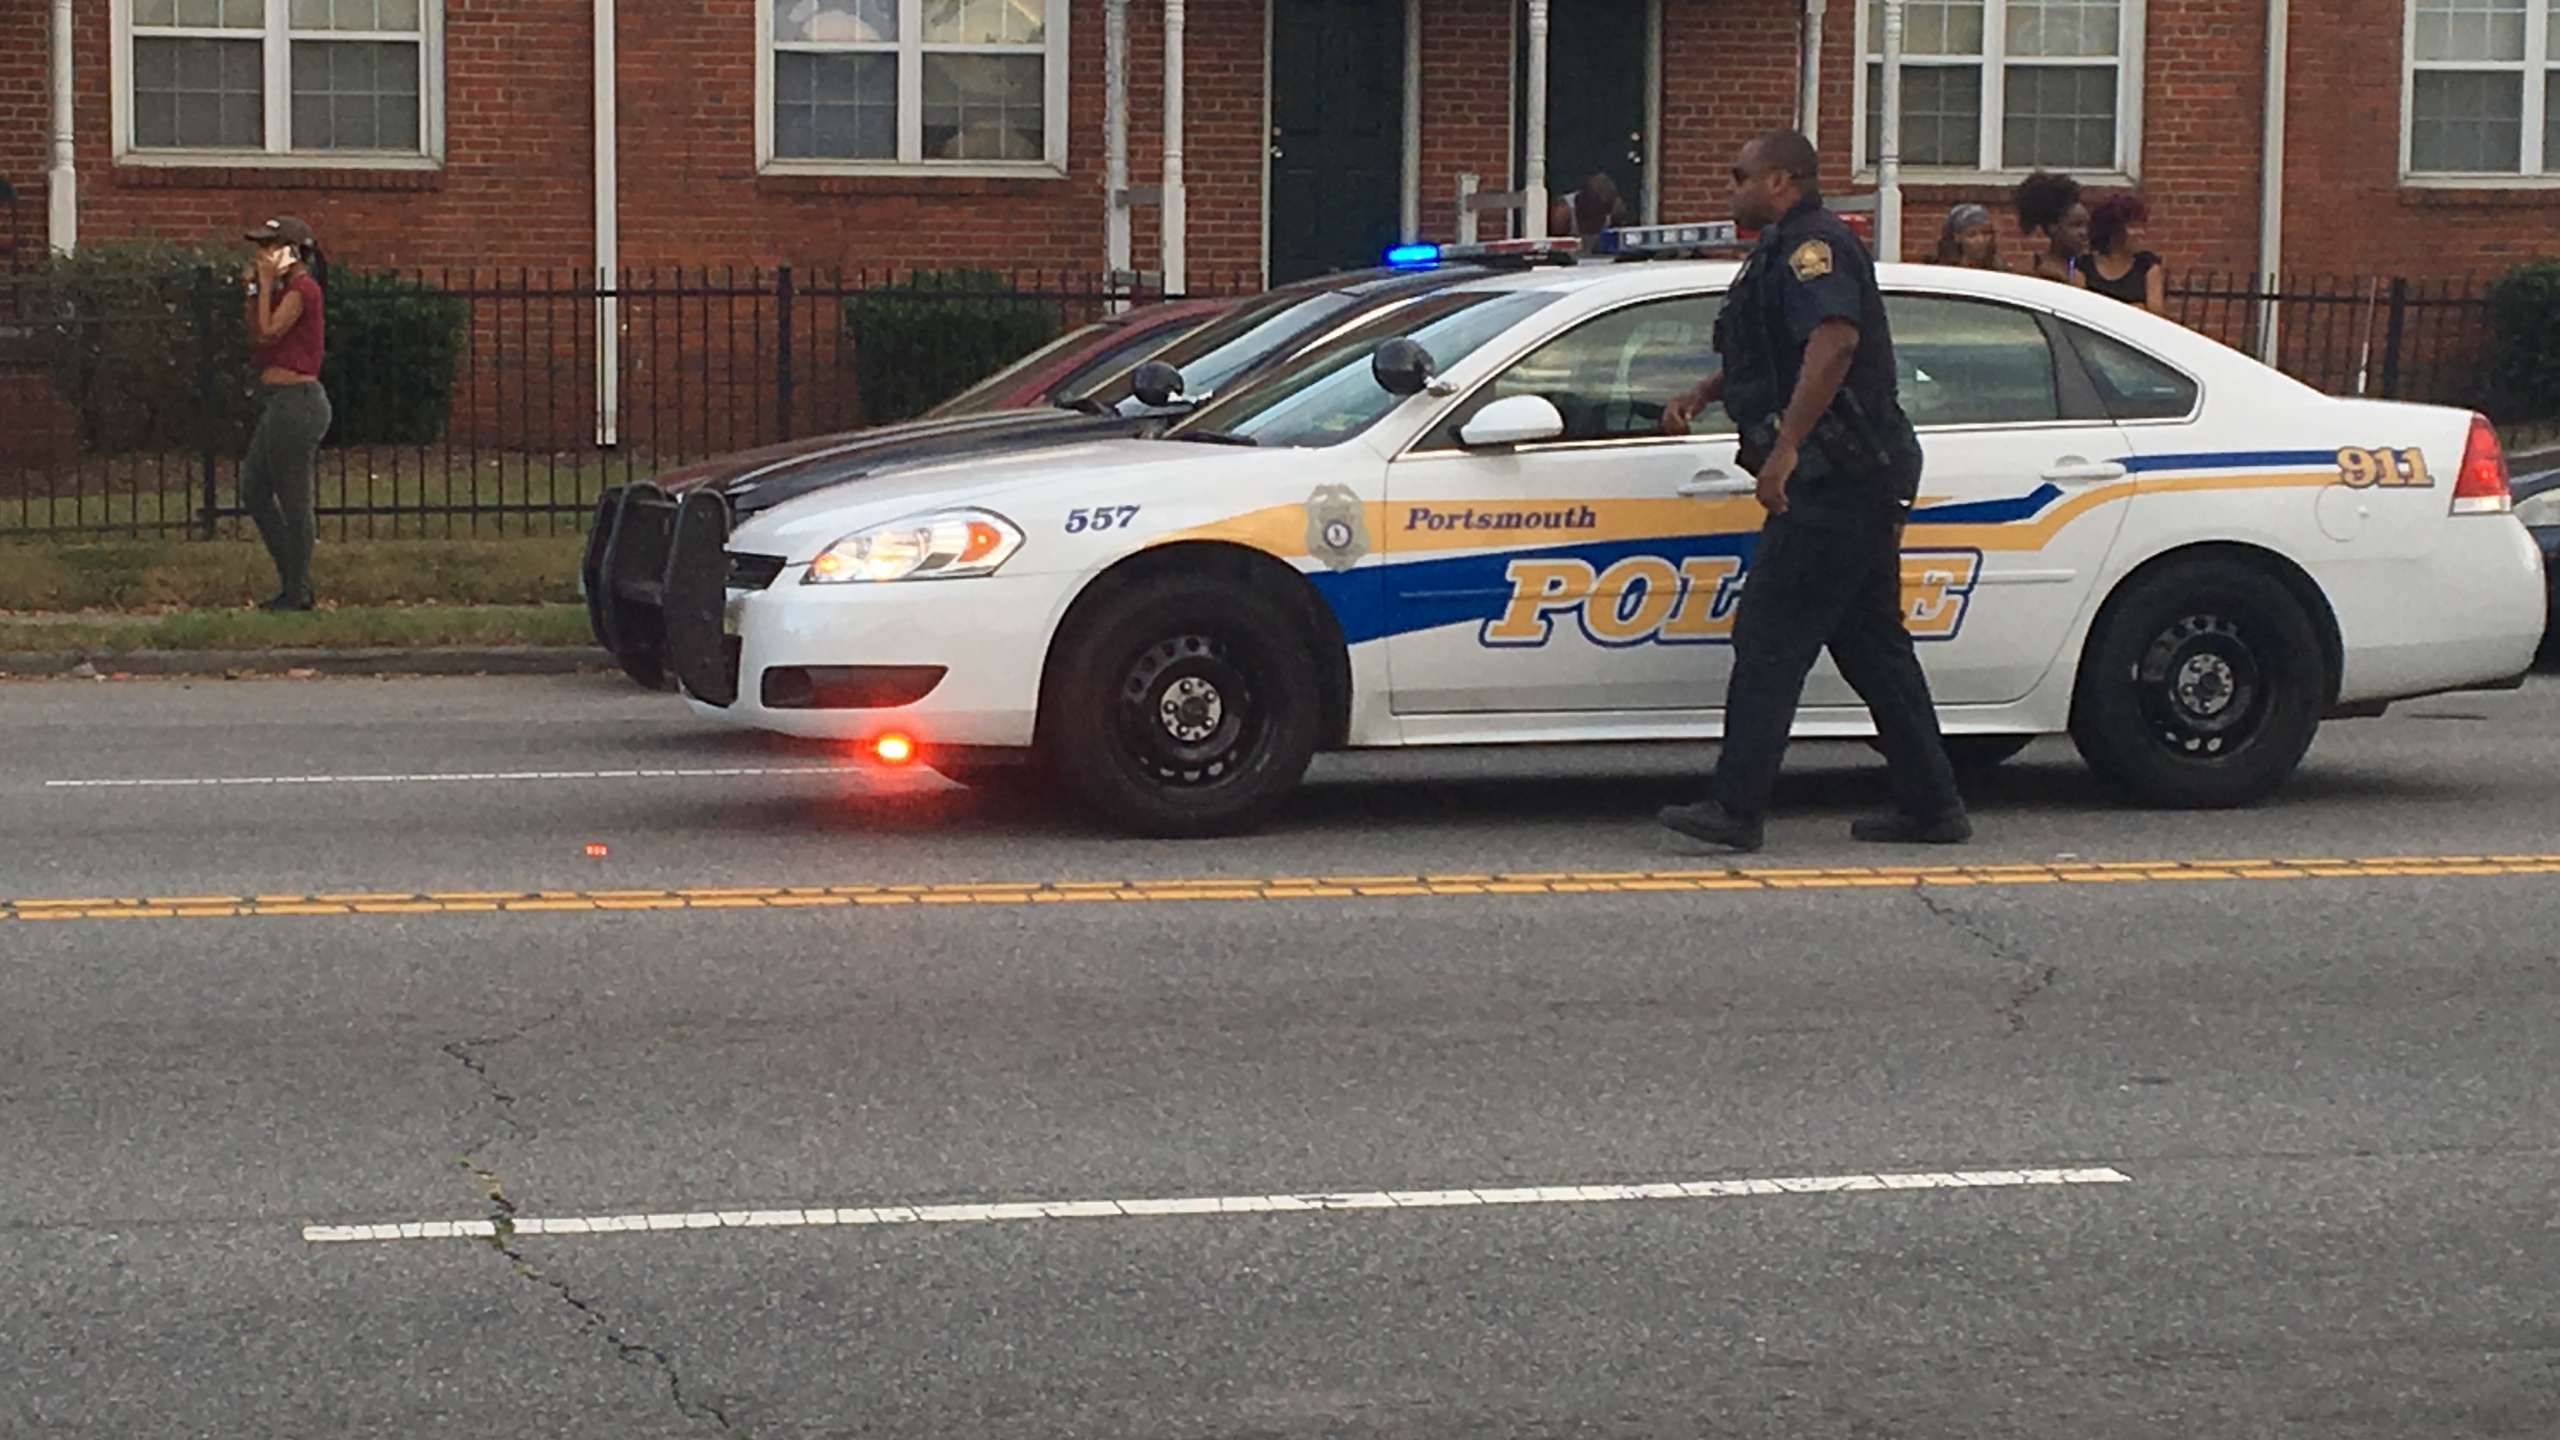 Woman seriously injured in auto-pedestrian crash in Portsmouth